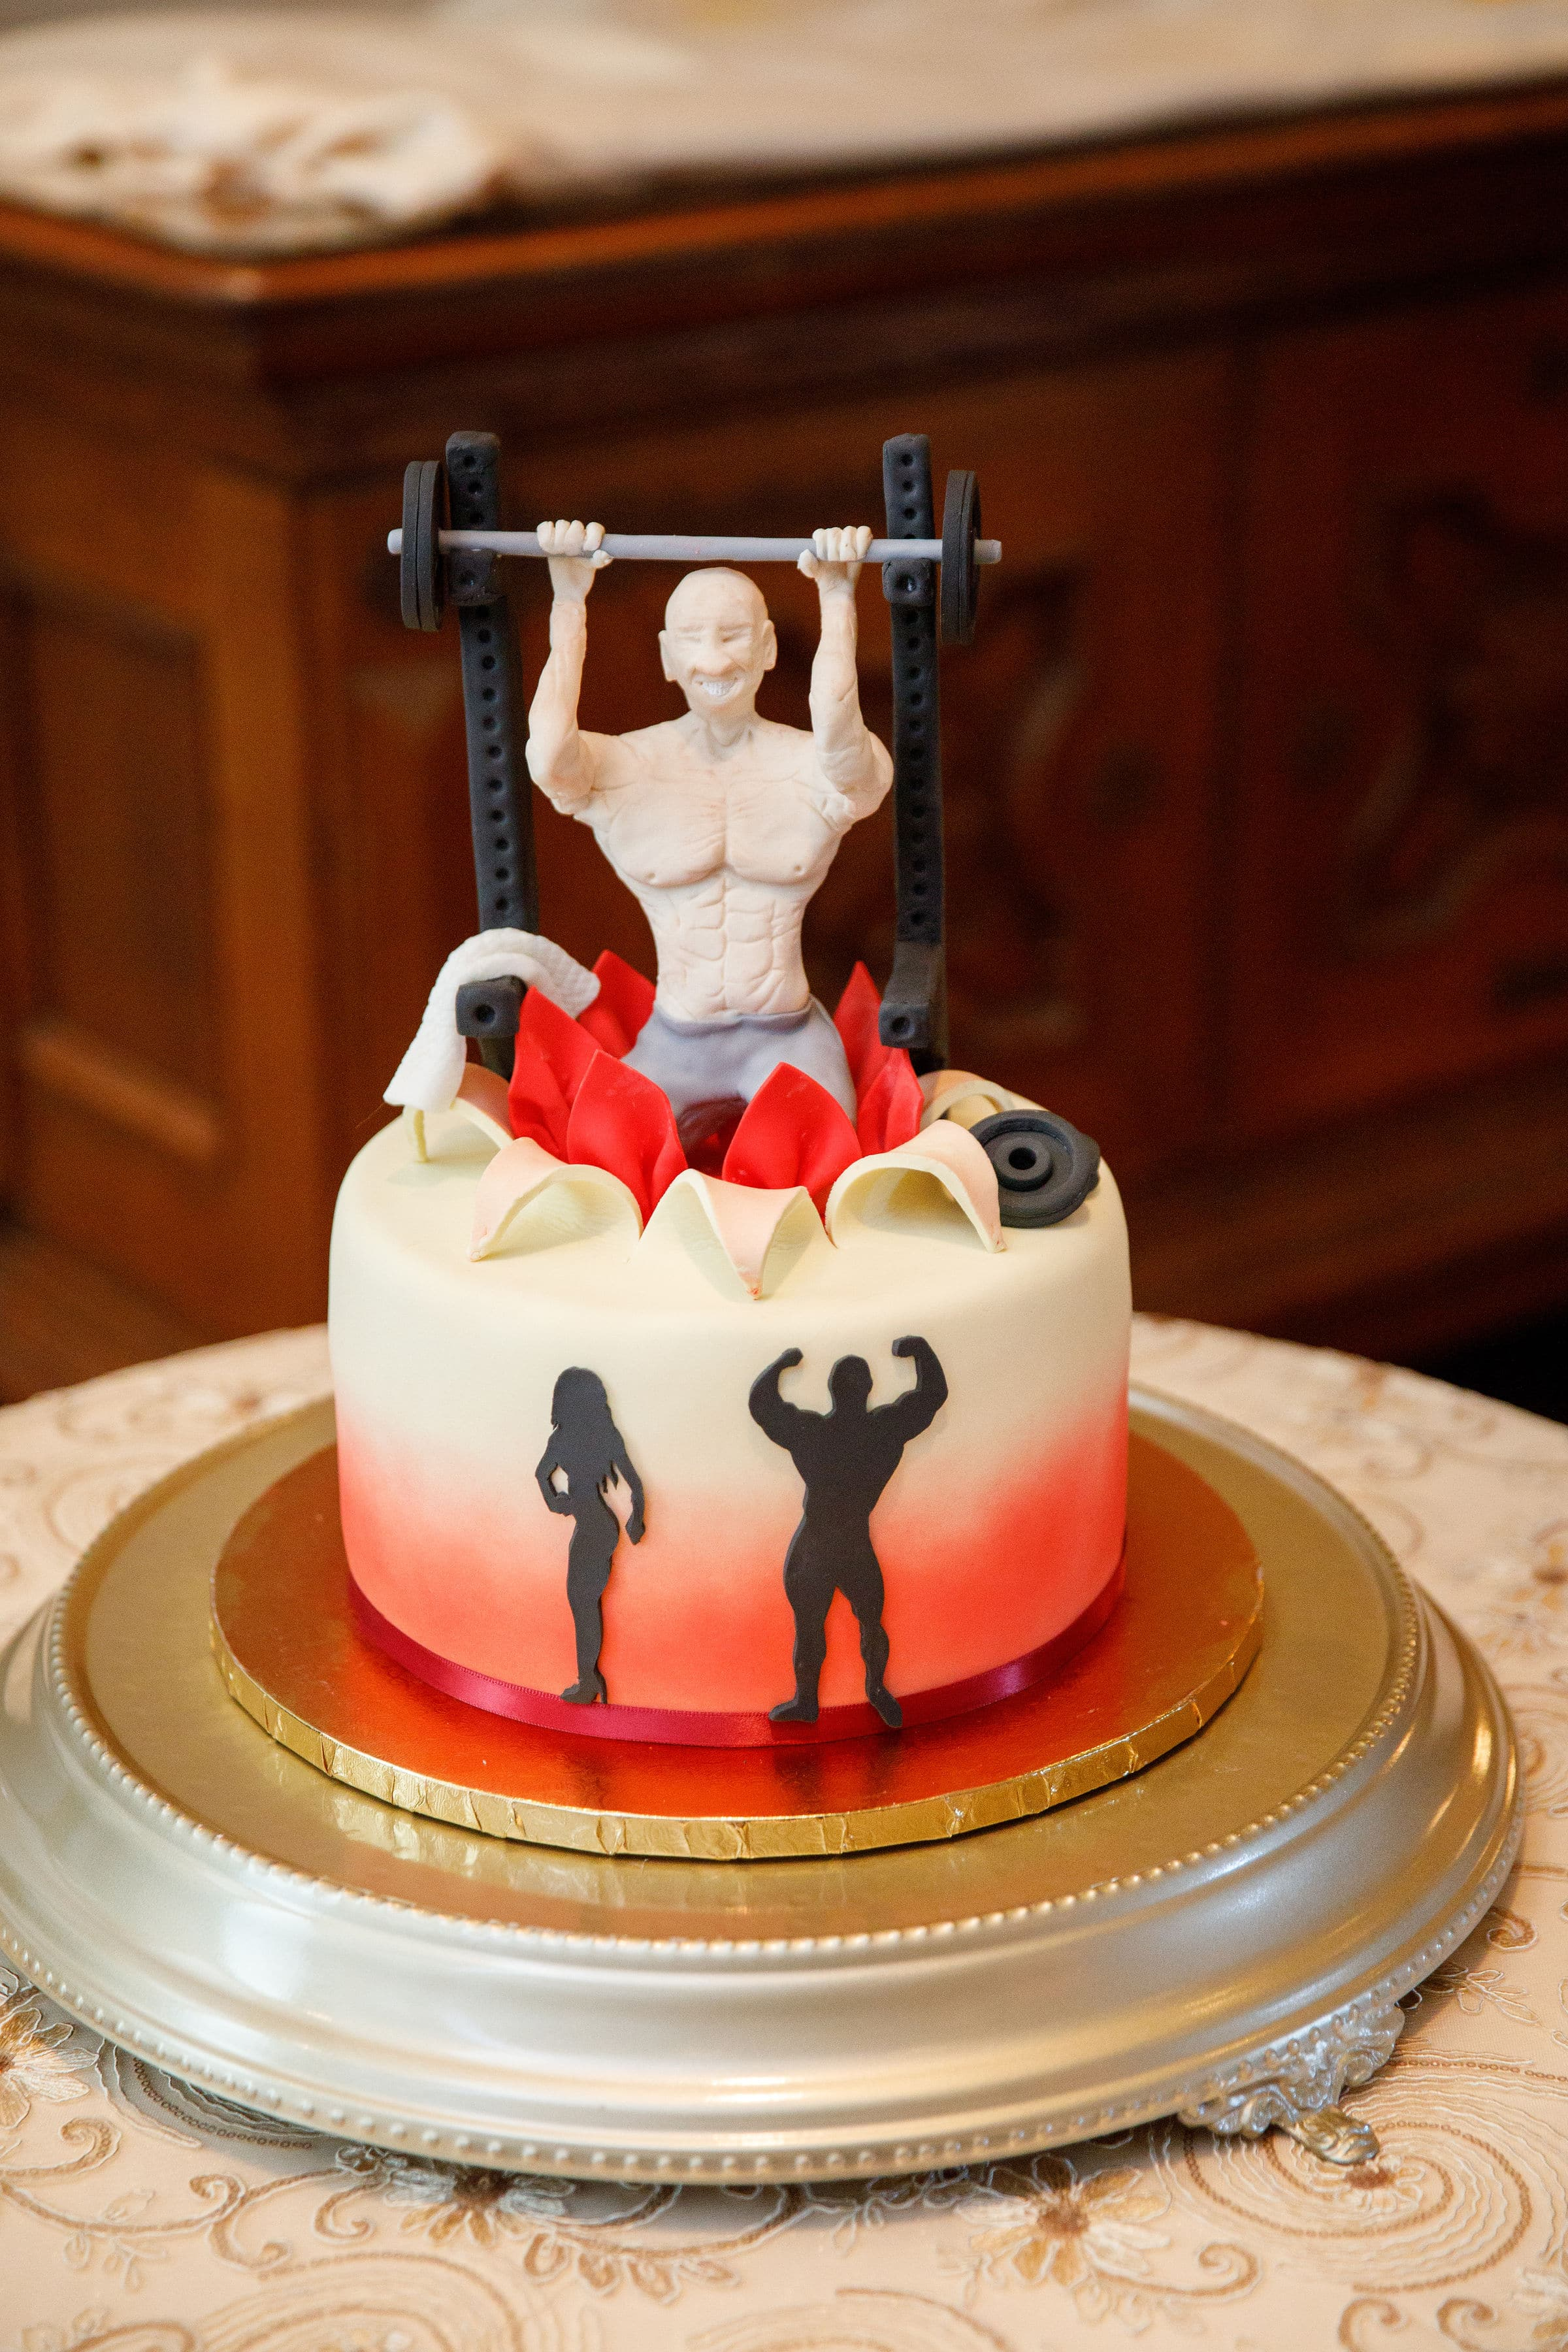 Cake with weight lifting man popping out of cake